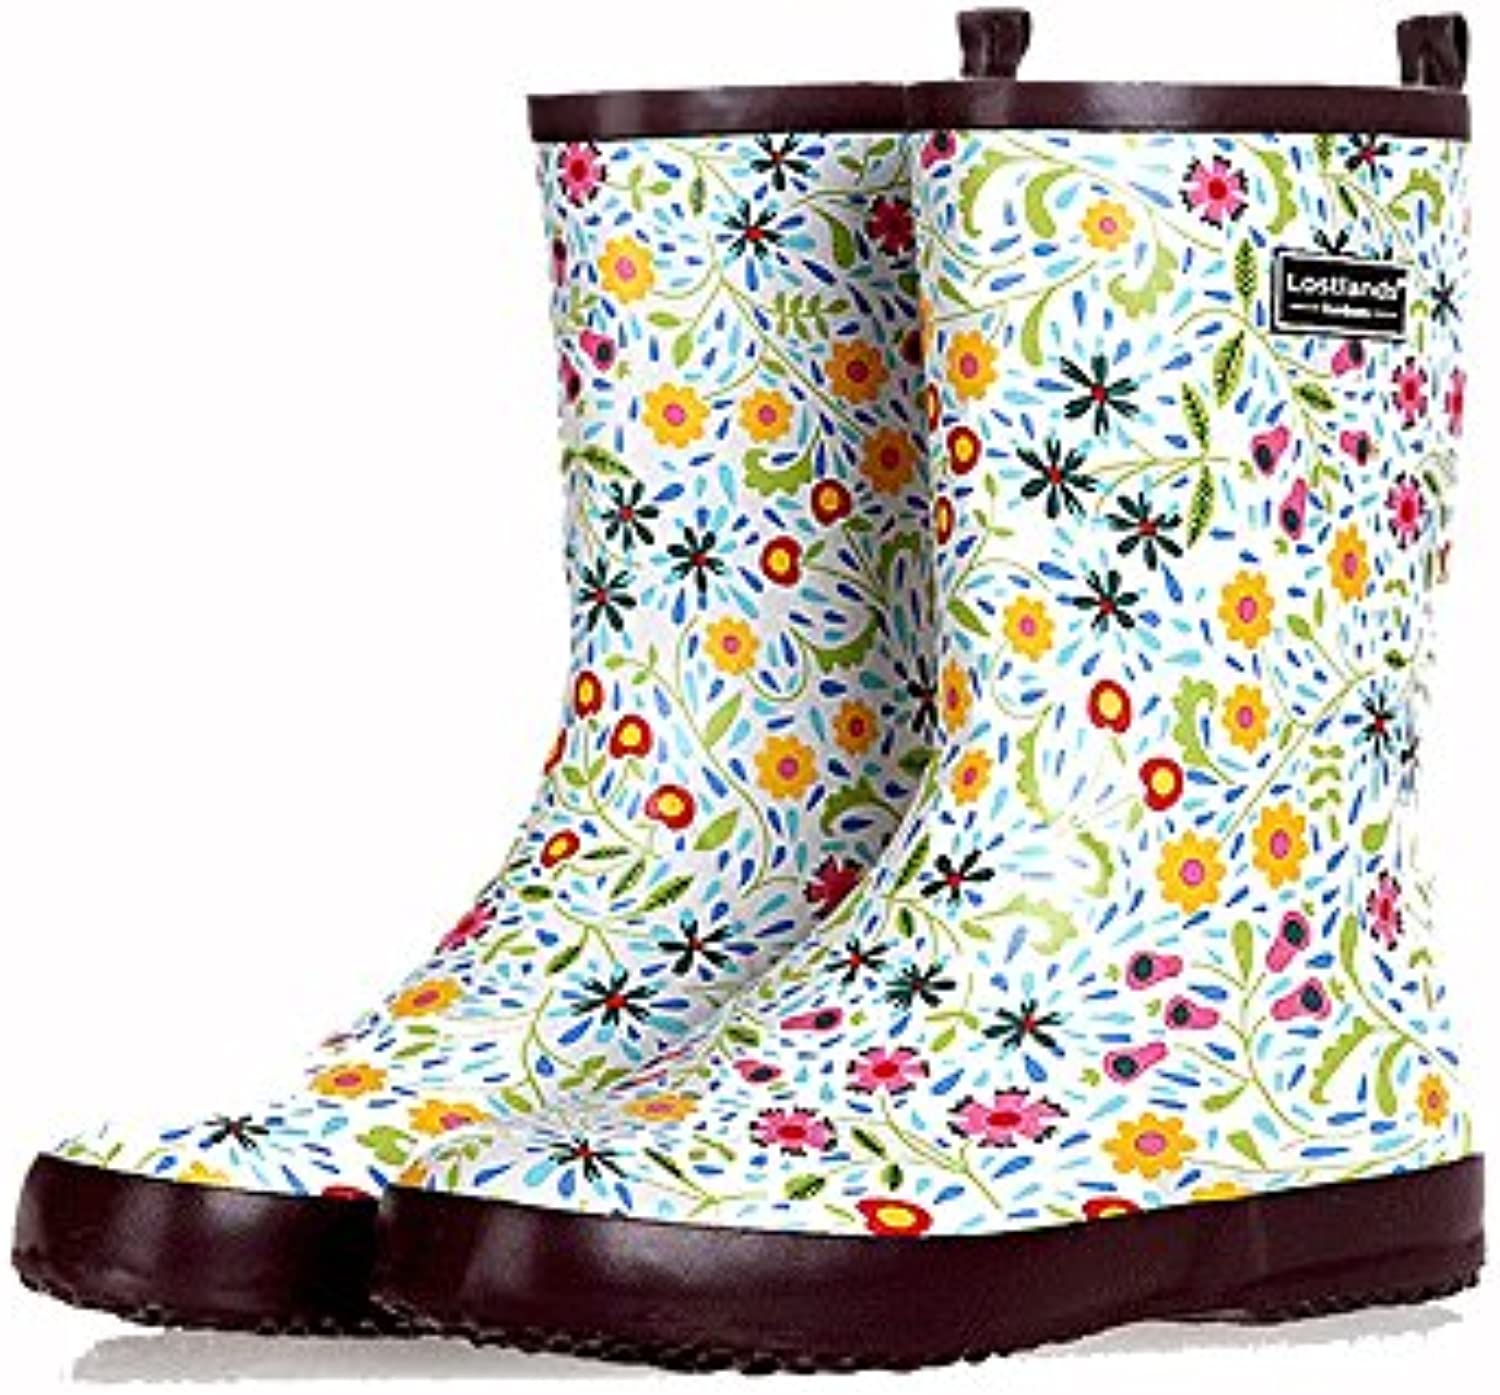 e0abd4043b6d Xiuzhifuxie 30296 Spring nhta-30297 Summer Printing Rubber Non Medium Tube  Ladies  Rain Boots Rubber Non Slip Waterproof Water Shoes.